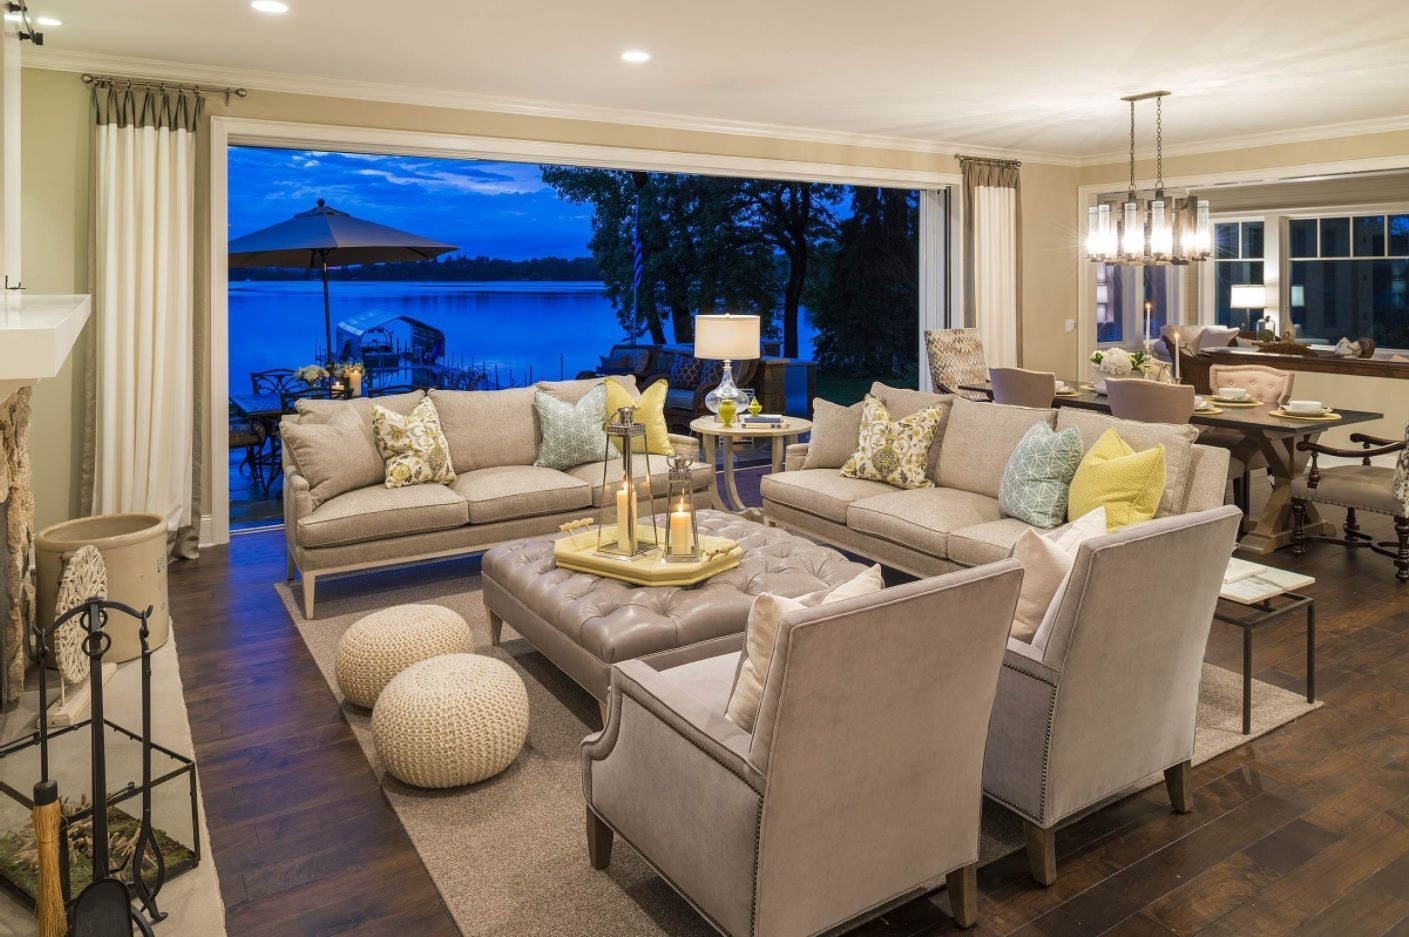 Living Room Layout Design & Decoration Ideas. Gray decorated zone in front of panoramic window full of seats and with quilted coffee table in center